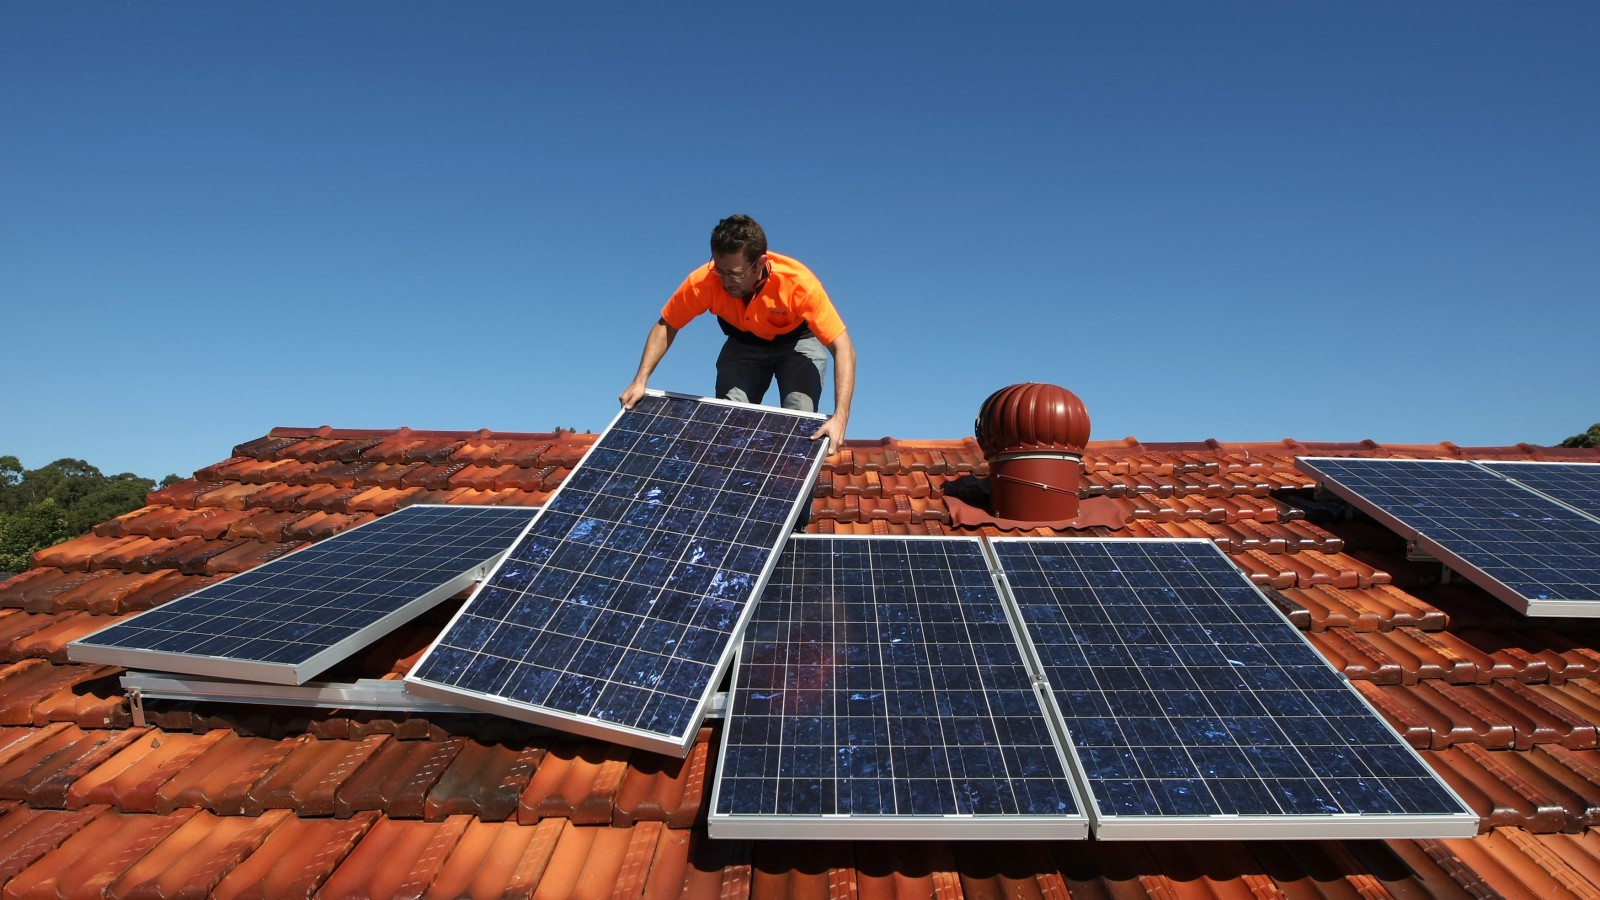 Solar system installer Thomas Bywater adjusts new solar panels.